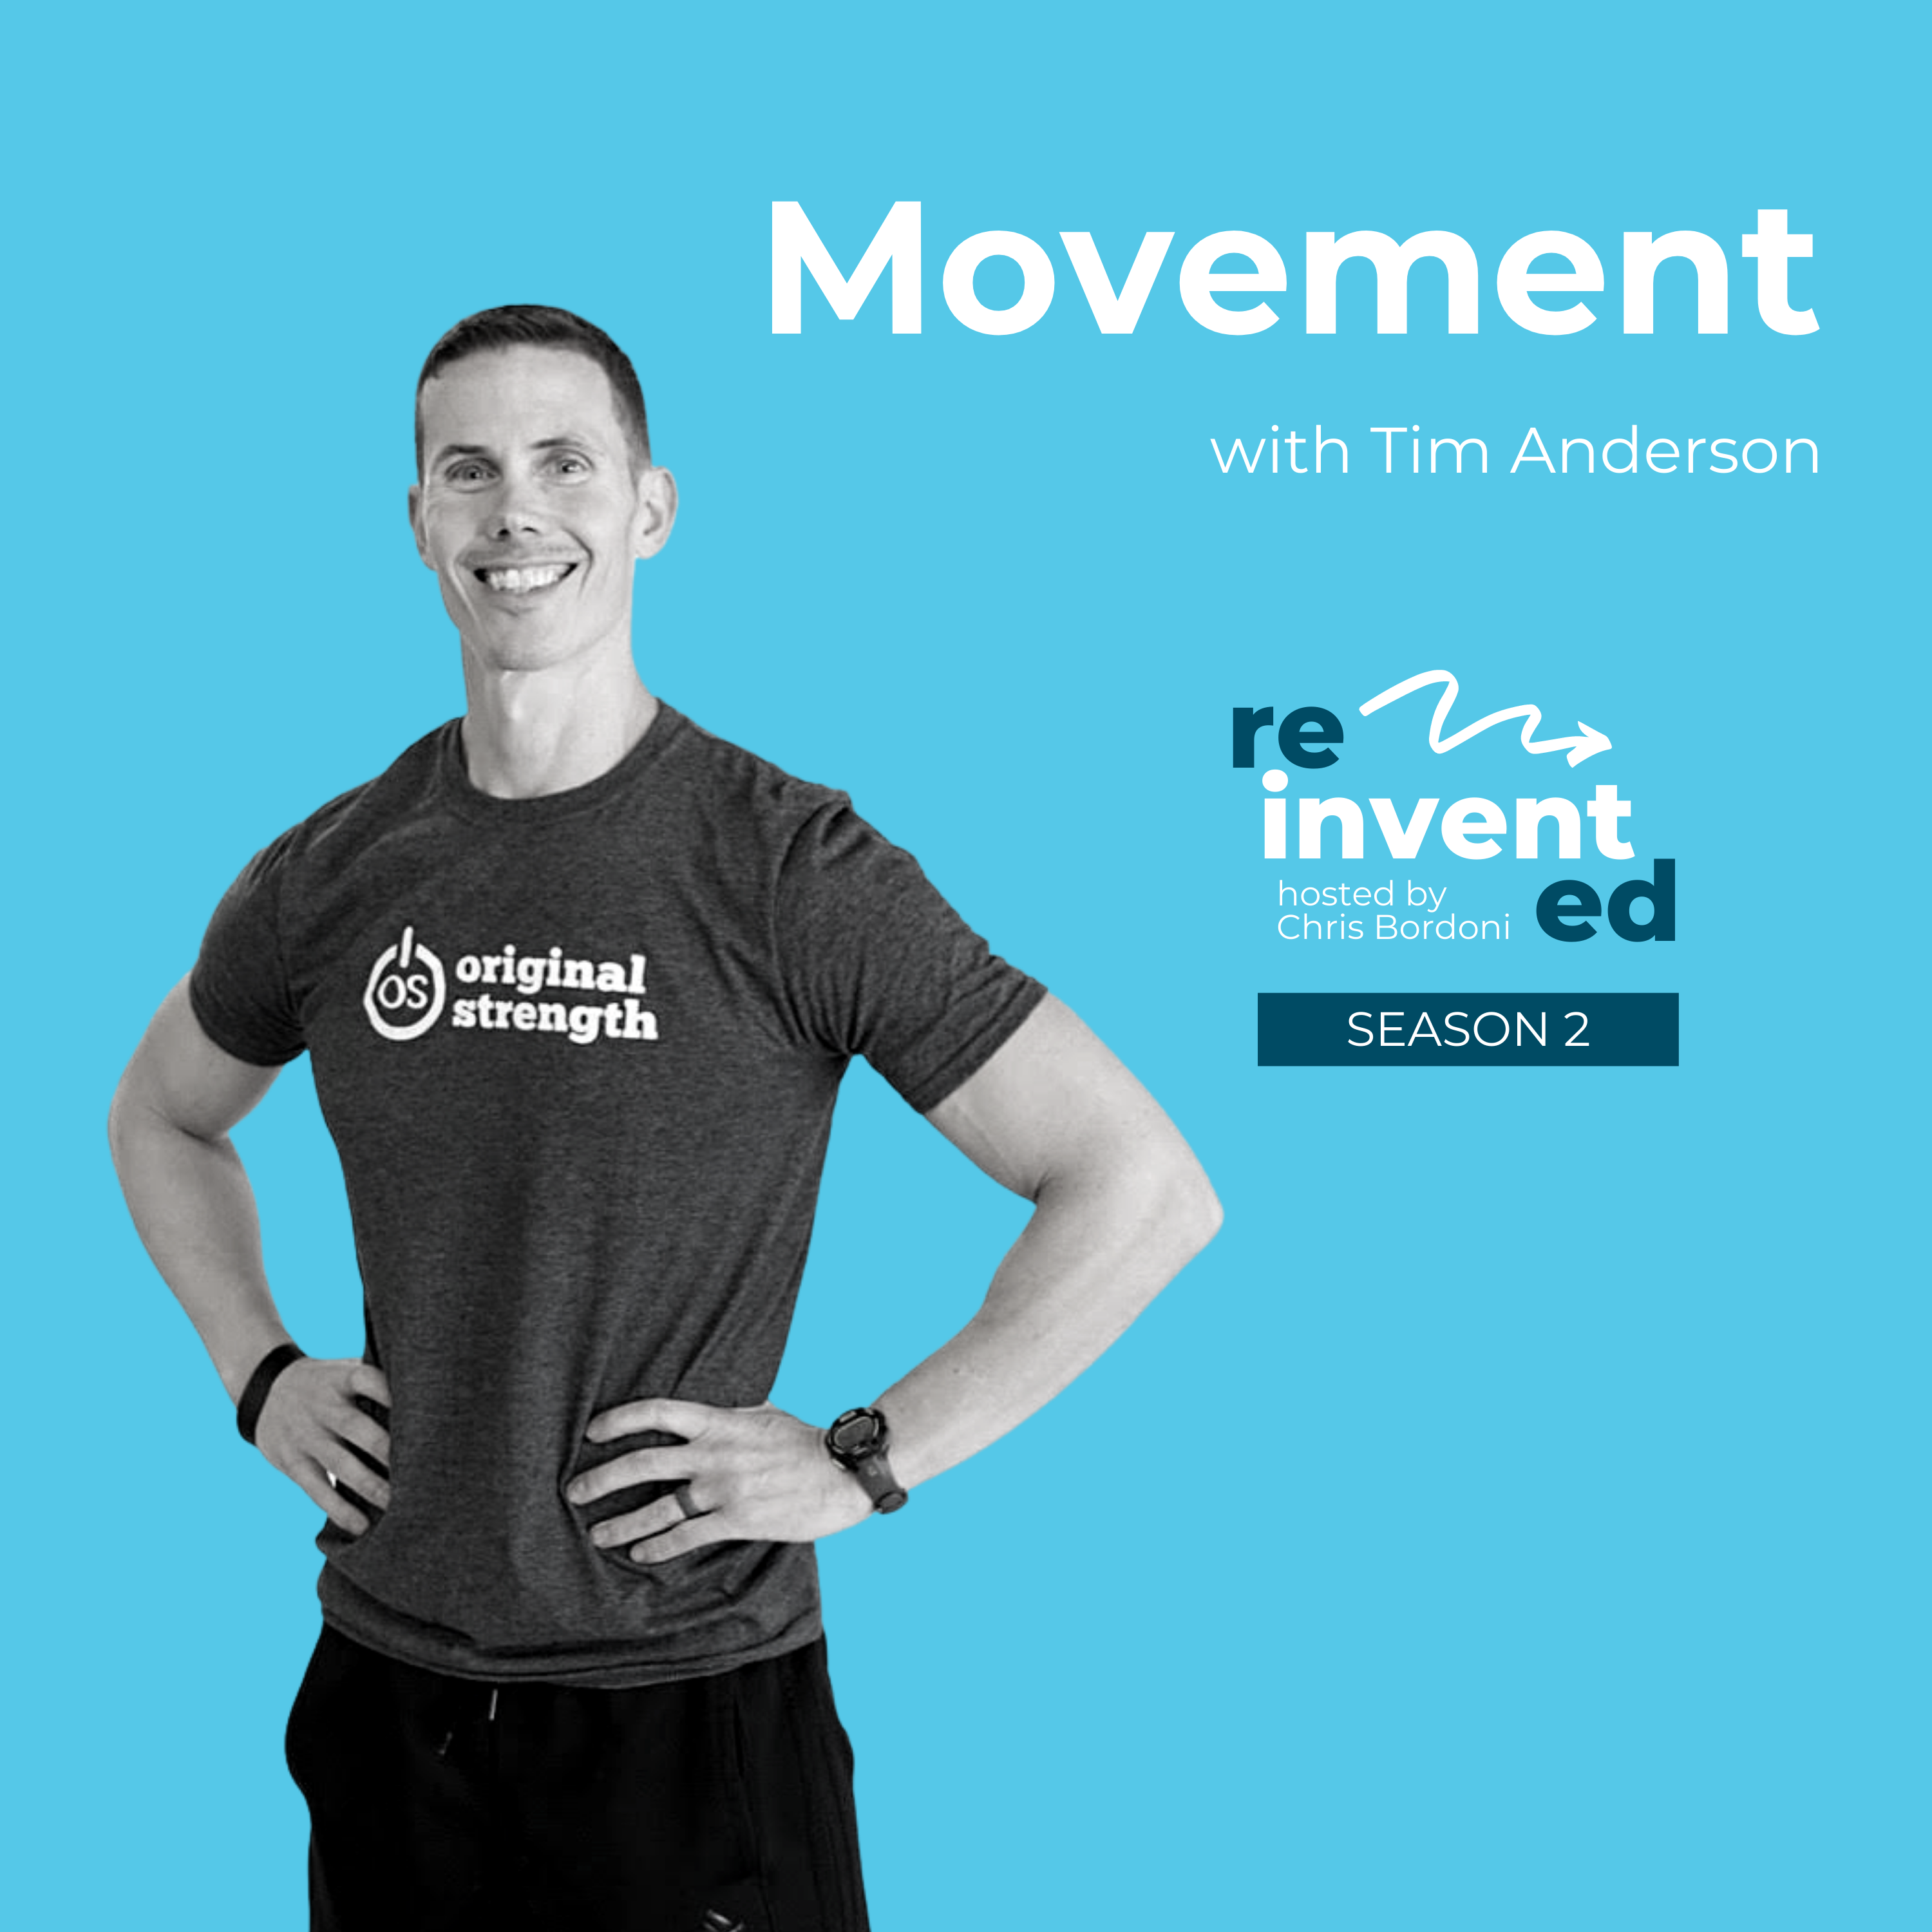 Reinvented   S2   Tim Anderson   Movement